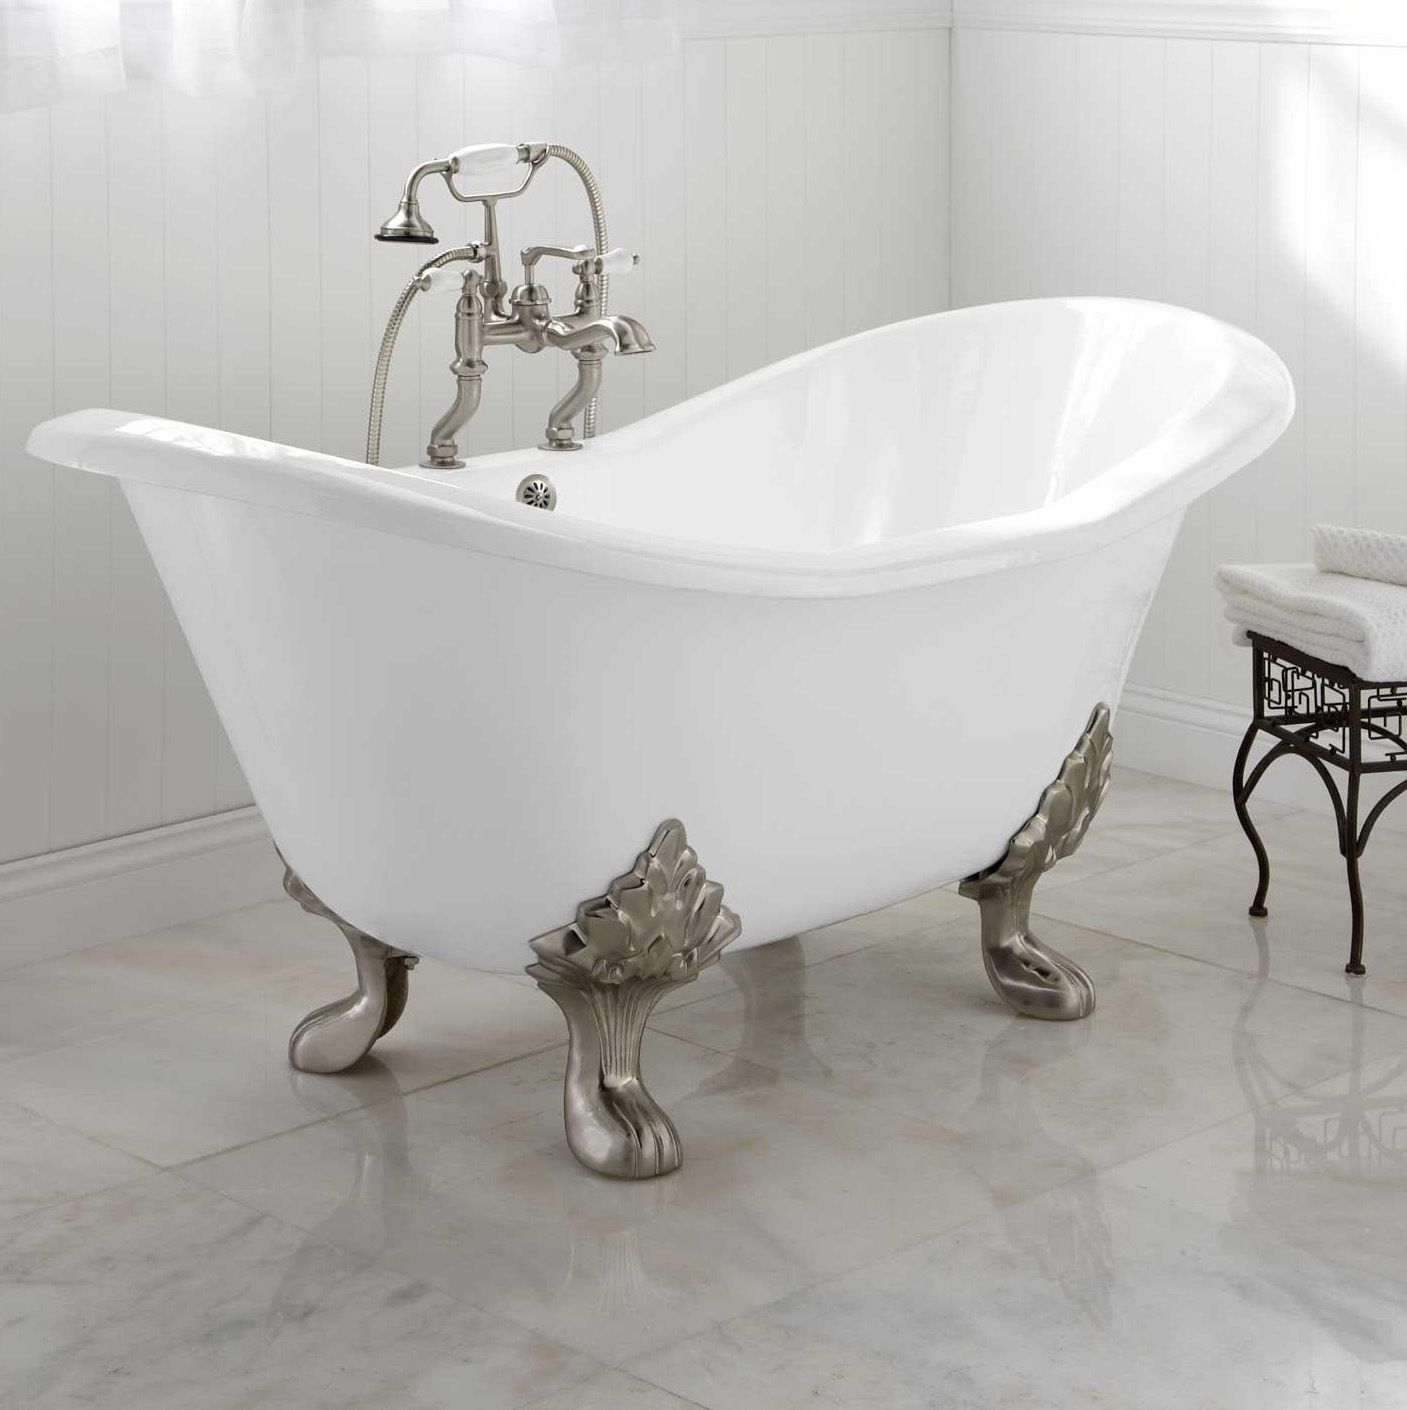 Clawfoot Tubs To Fit Your Space And Budget